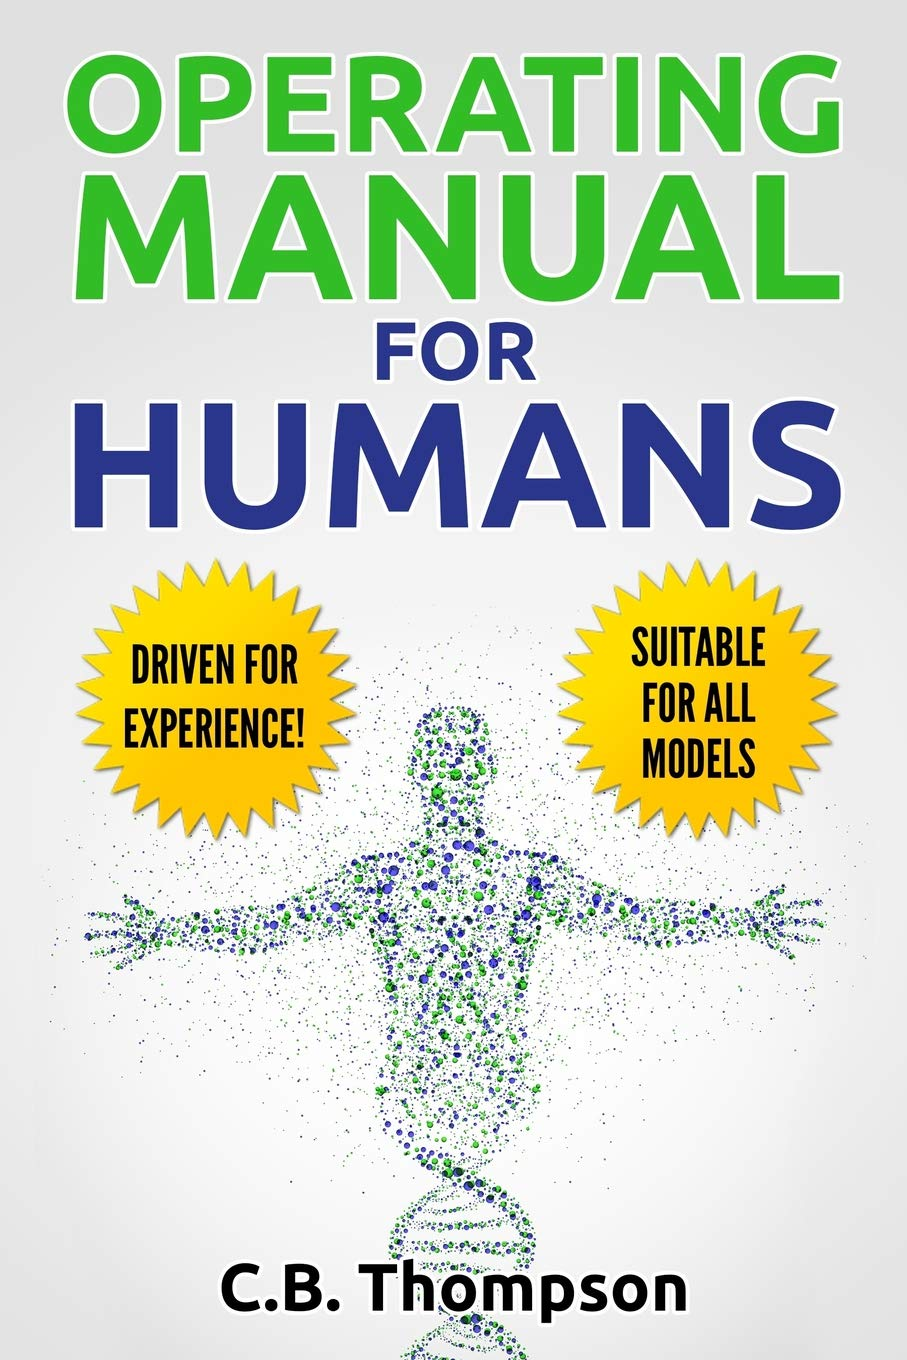 Download Operating Manual For Humans: Driven For Experience! Suitable For All Models pdf